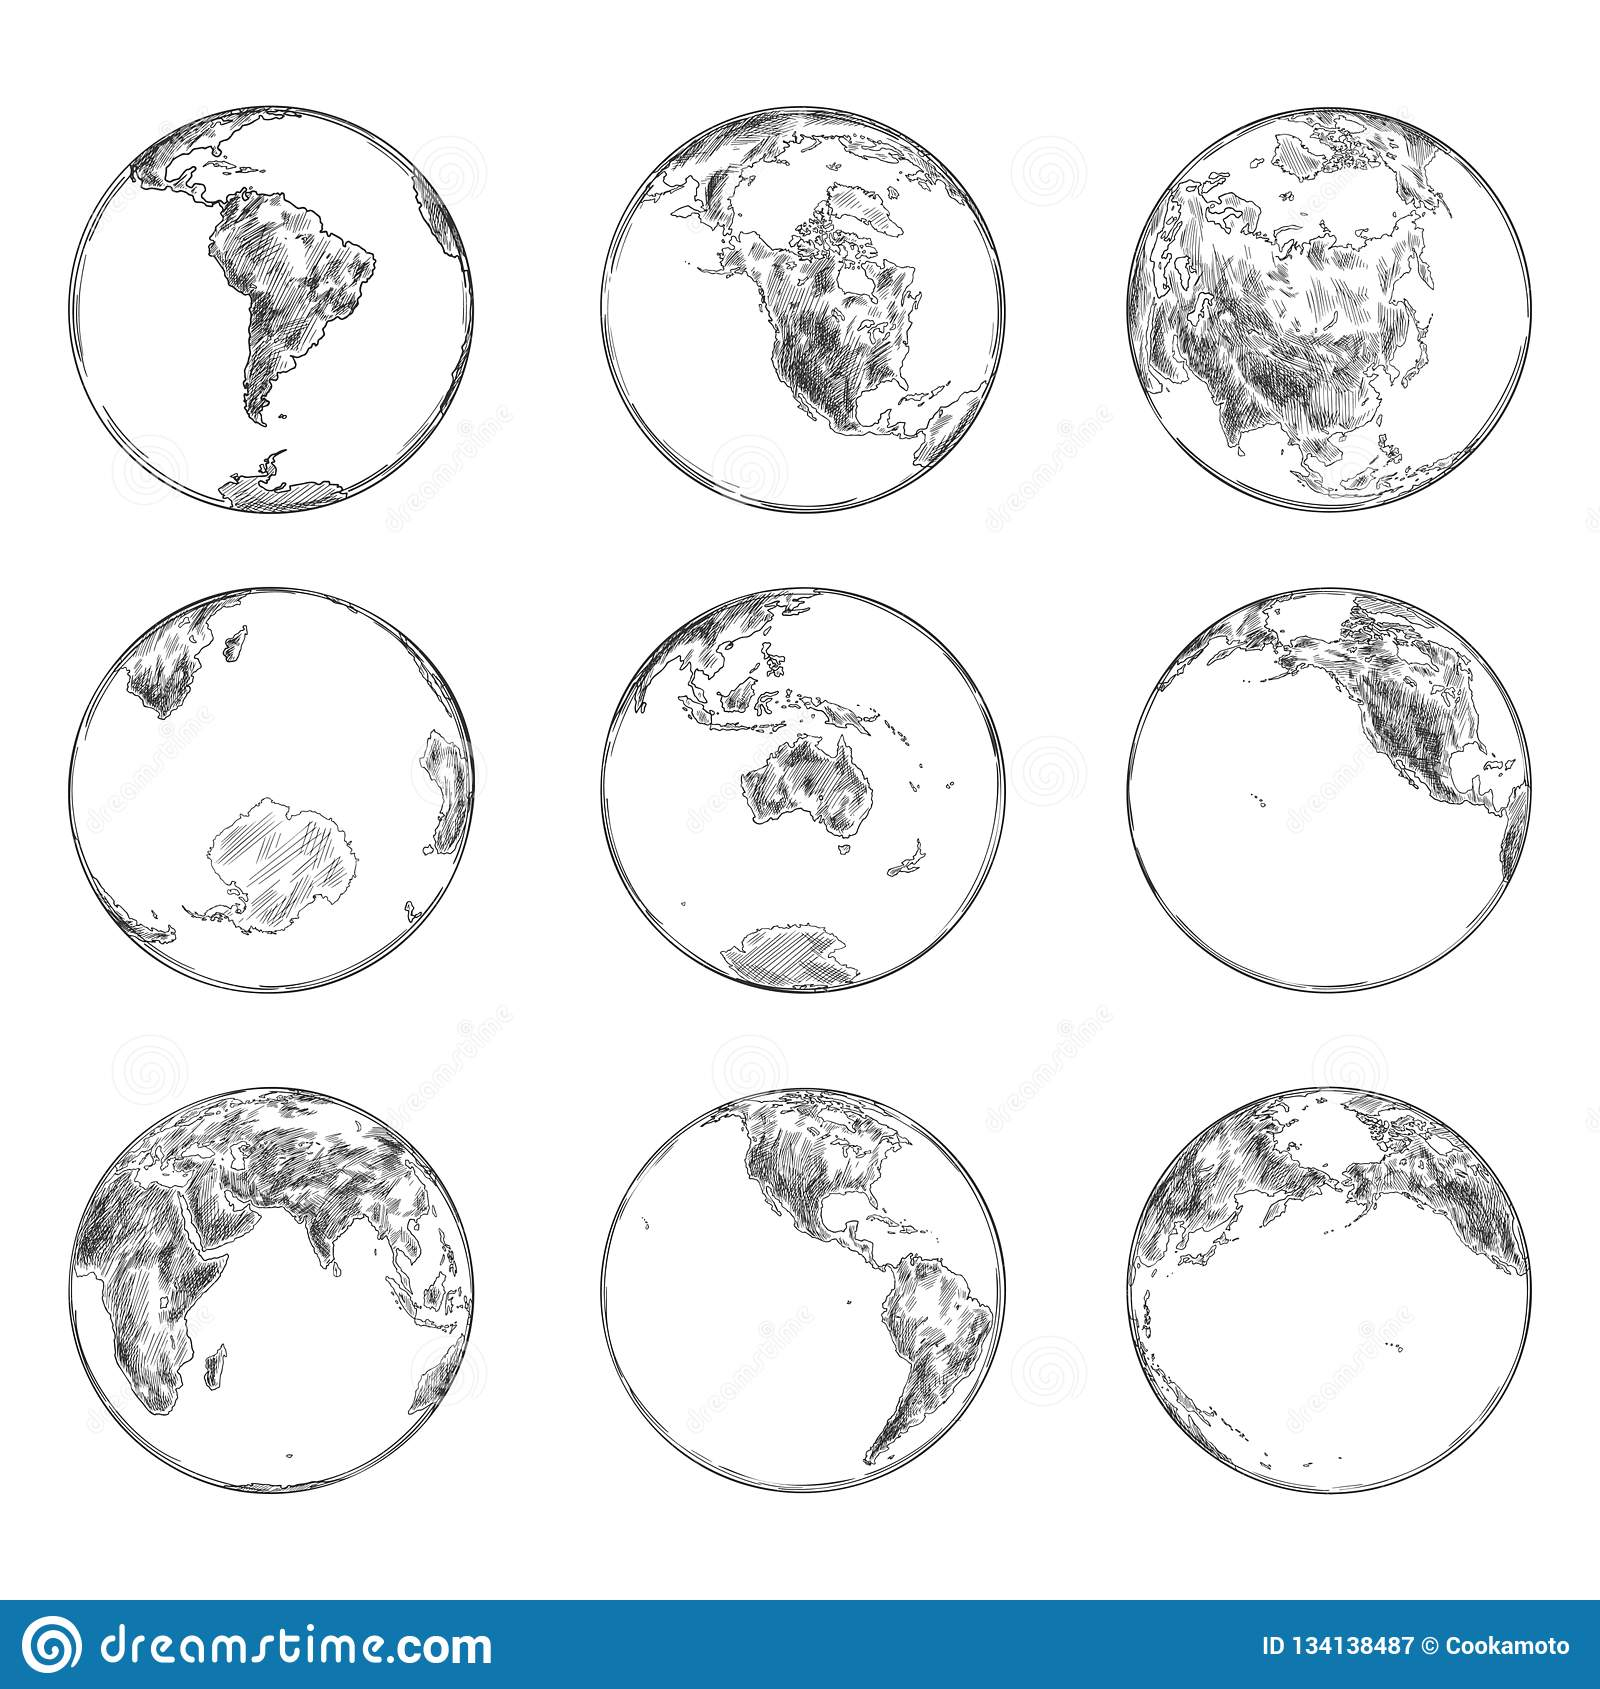 Sketches Of Continents On Planet Earth Ocean Stock